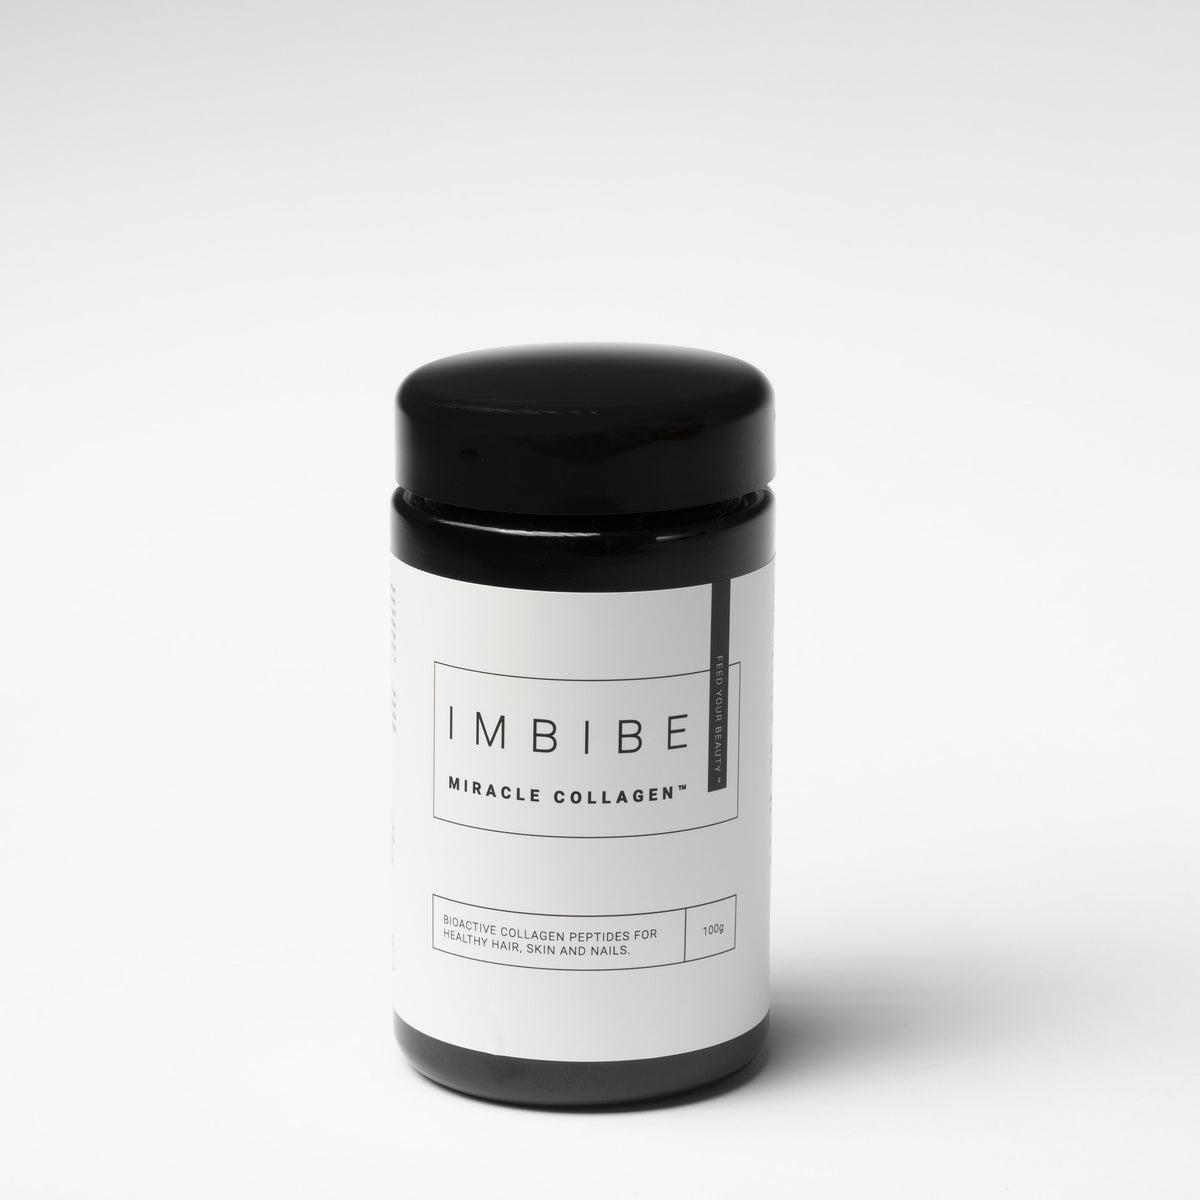 Imbibe Miracle Collagen is formulated with bioactive peptides to boost elasticity and hydration for plump and glowing skin. Official Imbibe stockist. Afterpay.